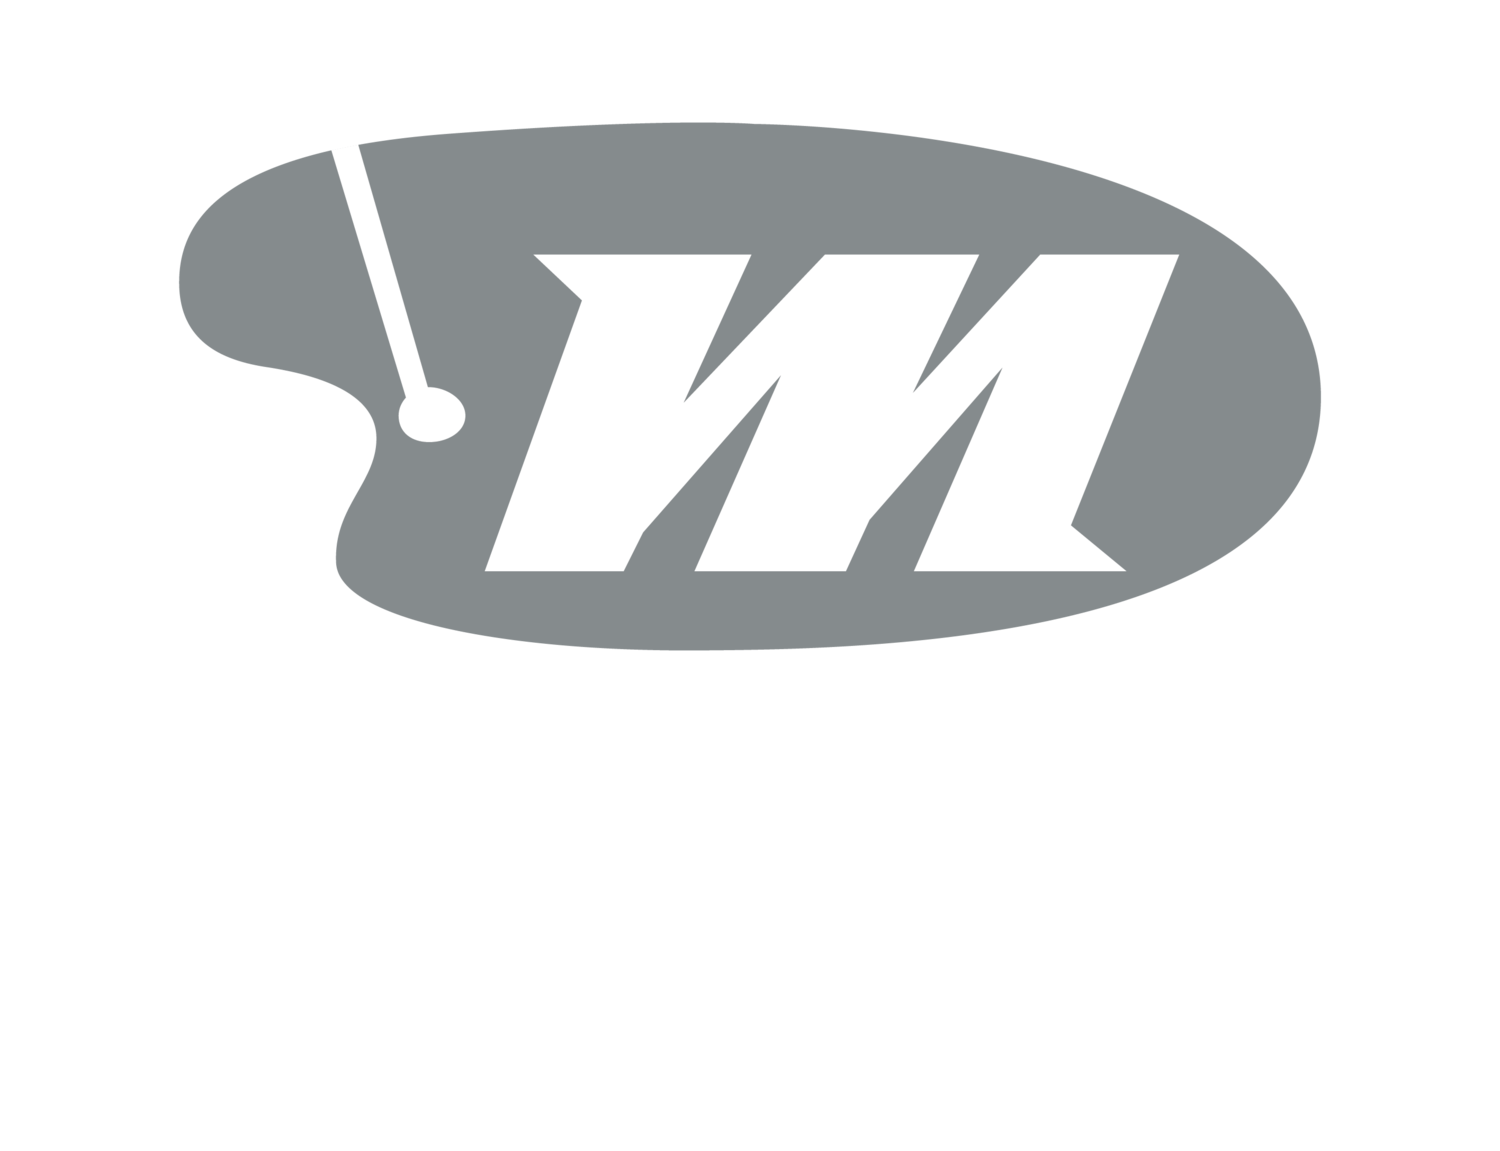 Manderley on the Green